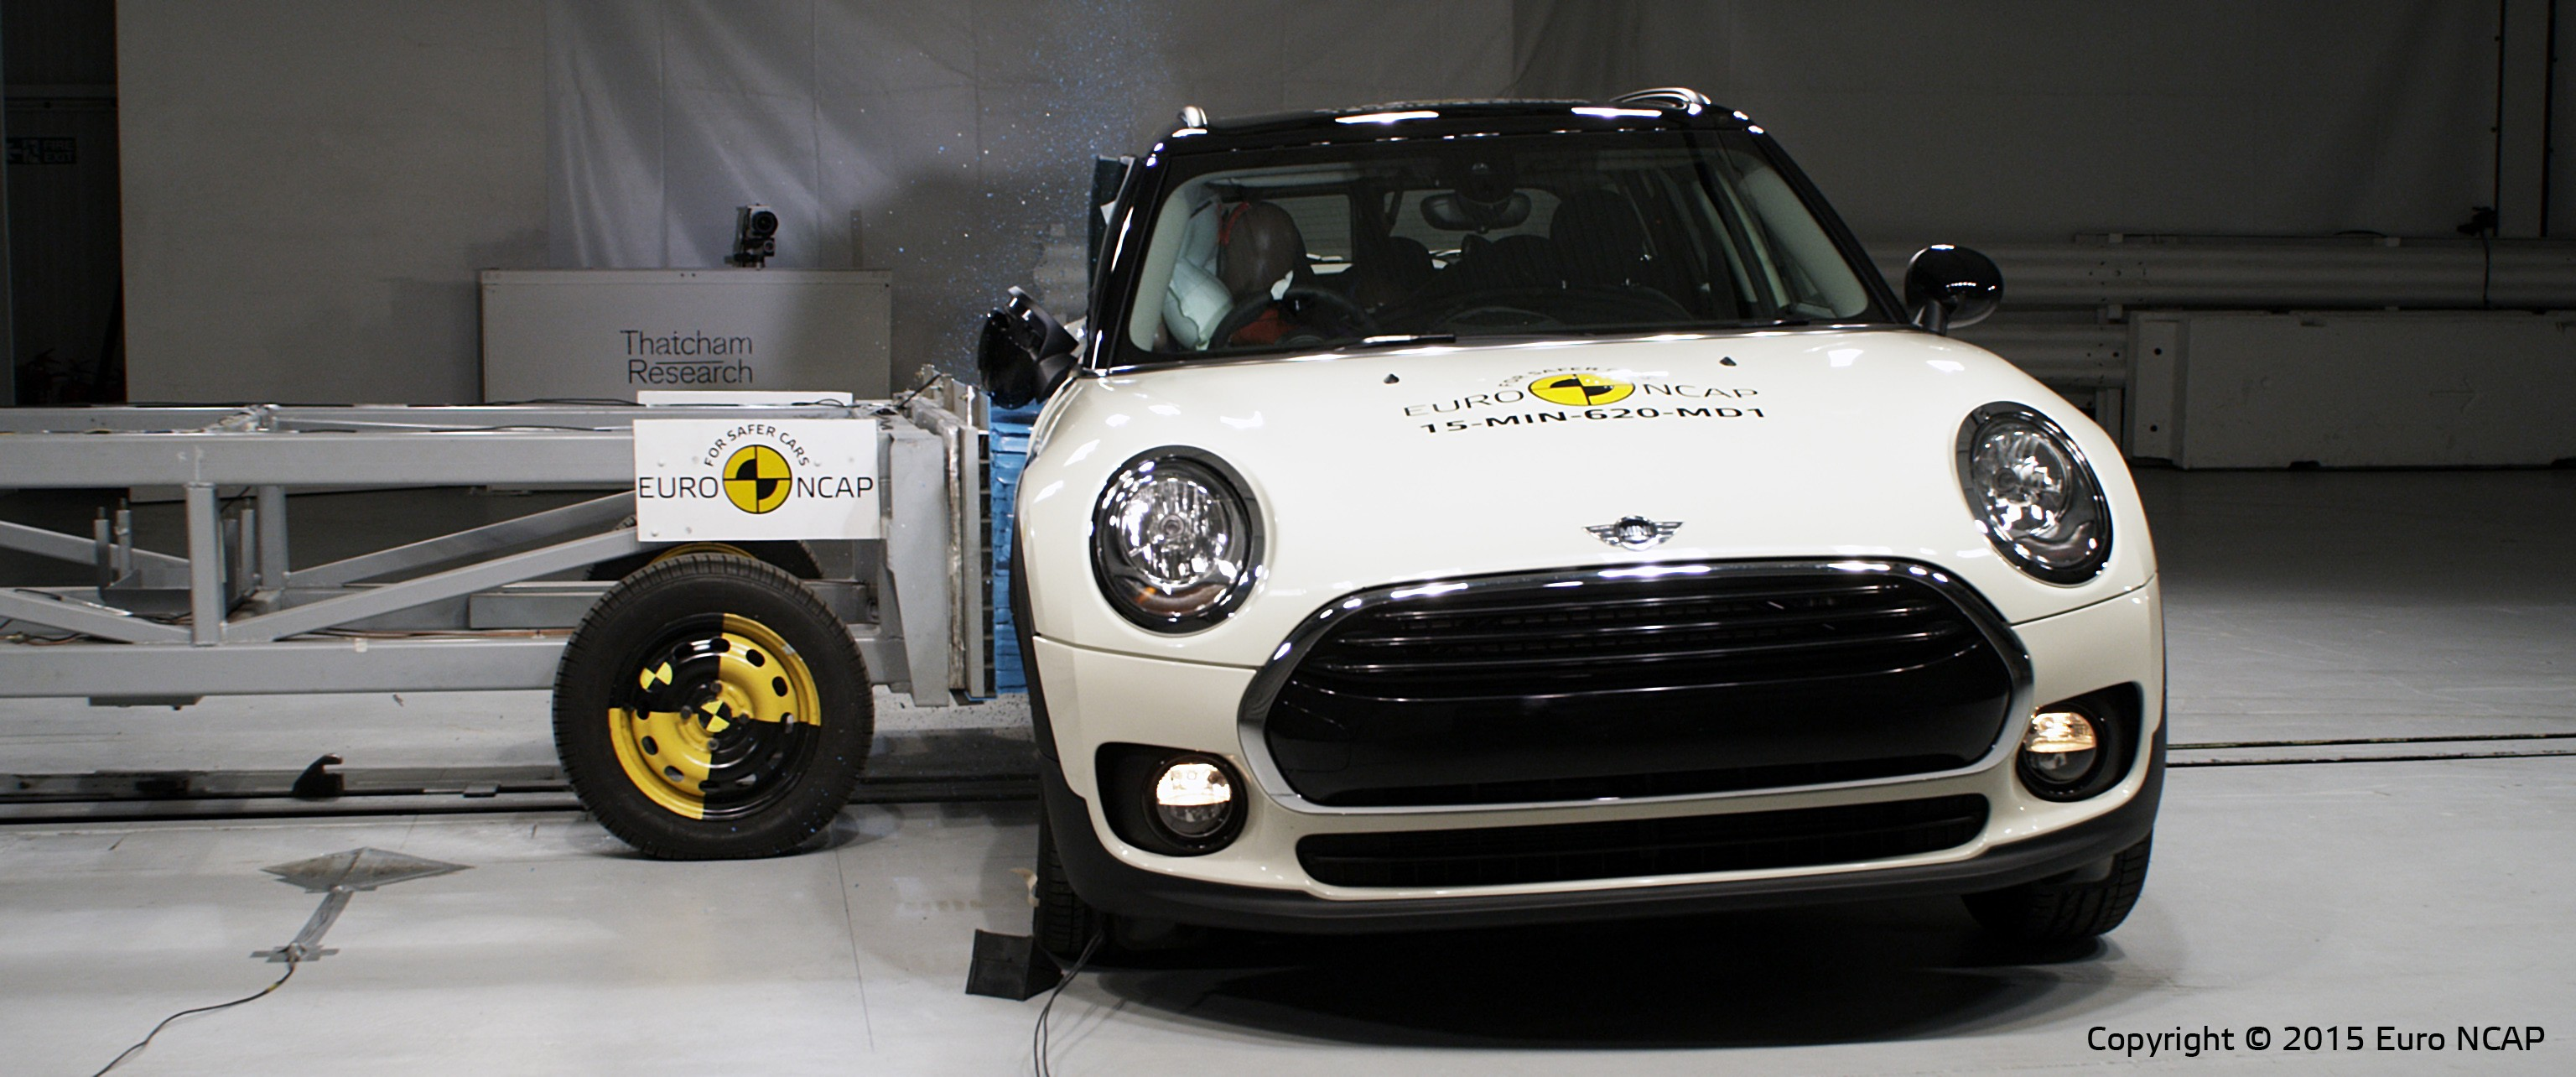 Latest Euroncap Test New Mini Clubman Falls Short With 4